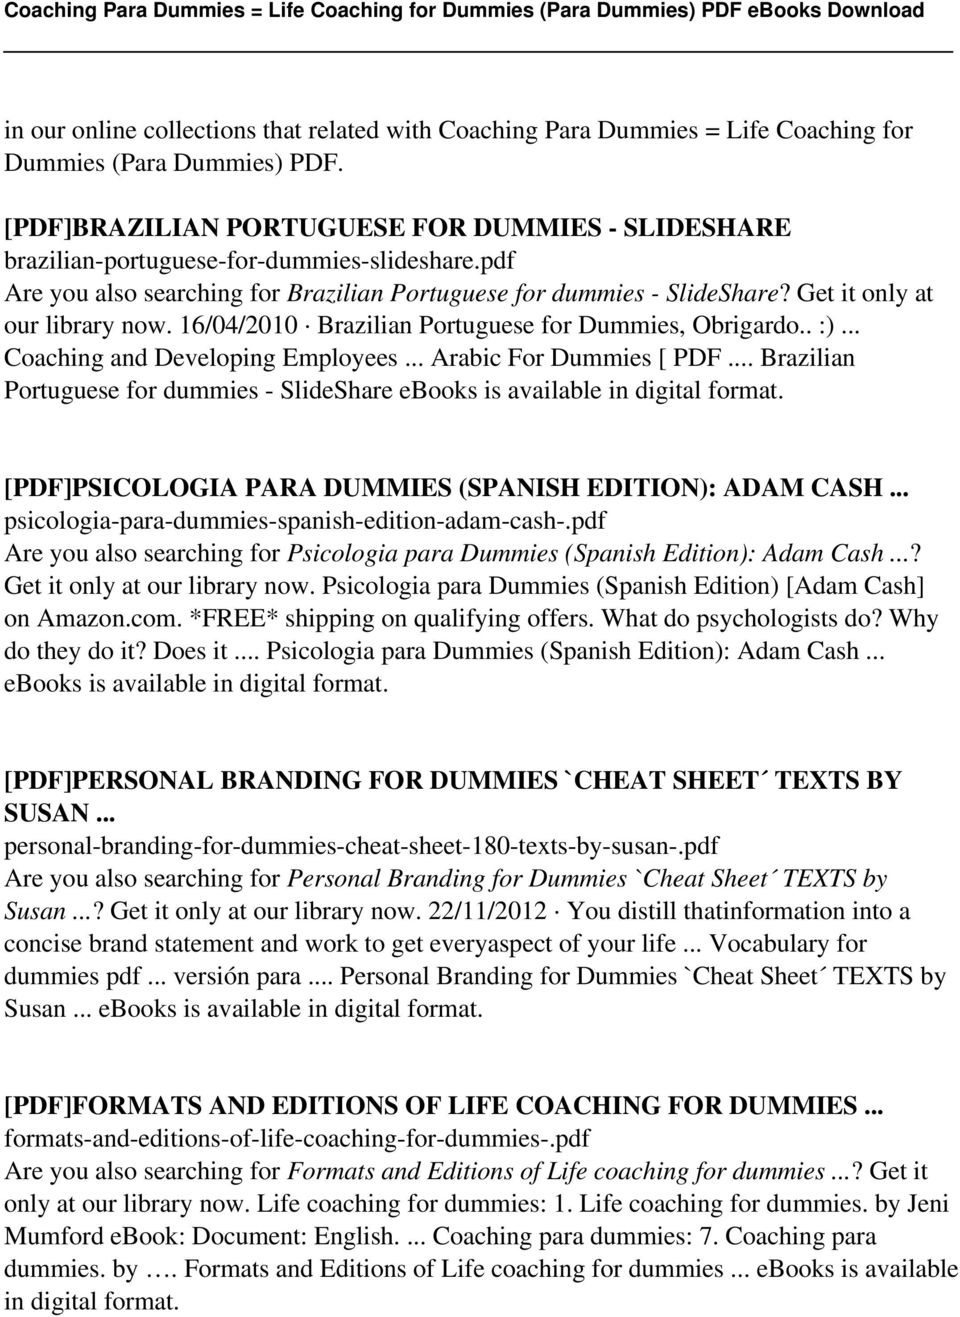 Coaching para dummies life coaching for dummies para dummies pdf get it only at our library now 16042010 brazilian portuguese for fandeluxe Image collections